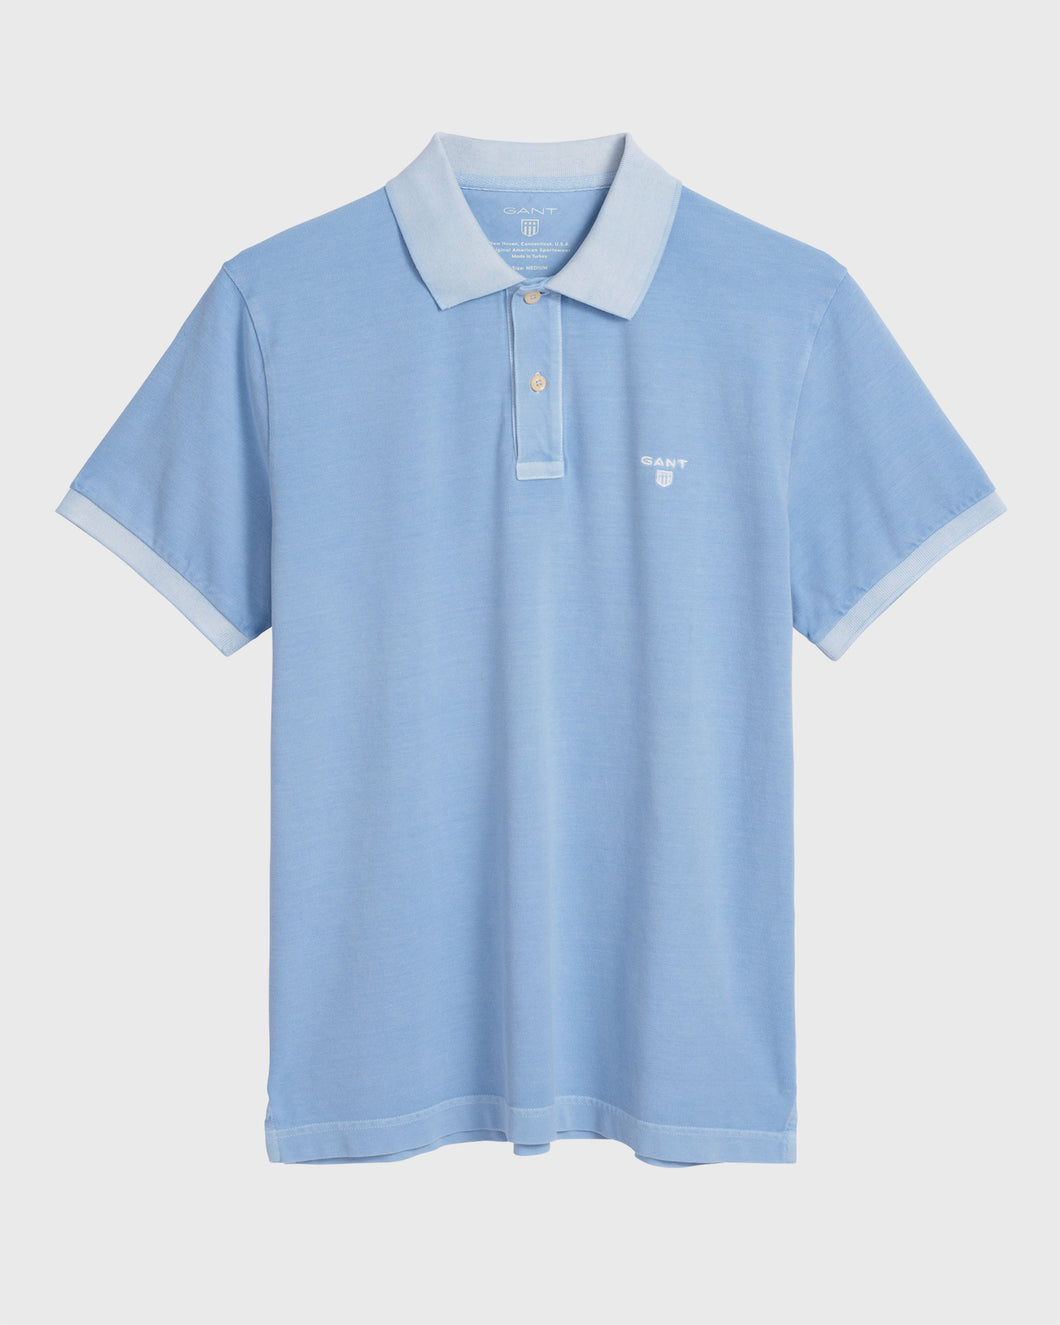 Gant Sunbleached Polo T-Shirt Capri Blue